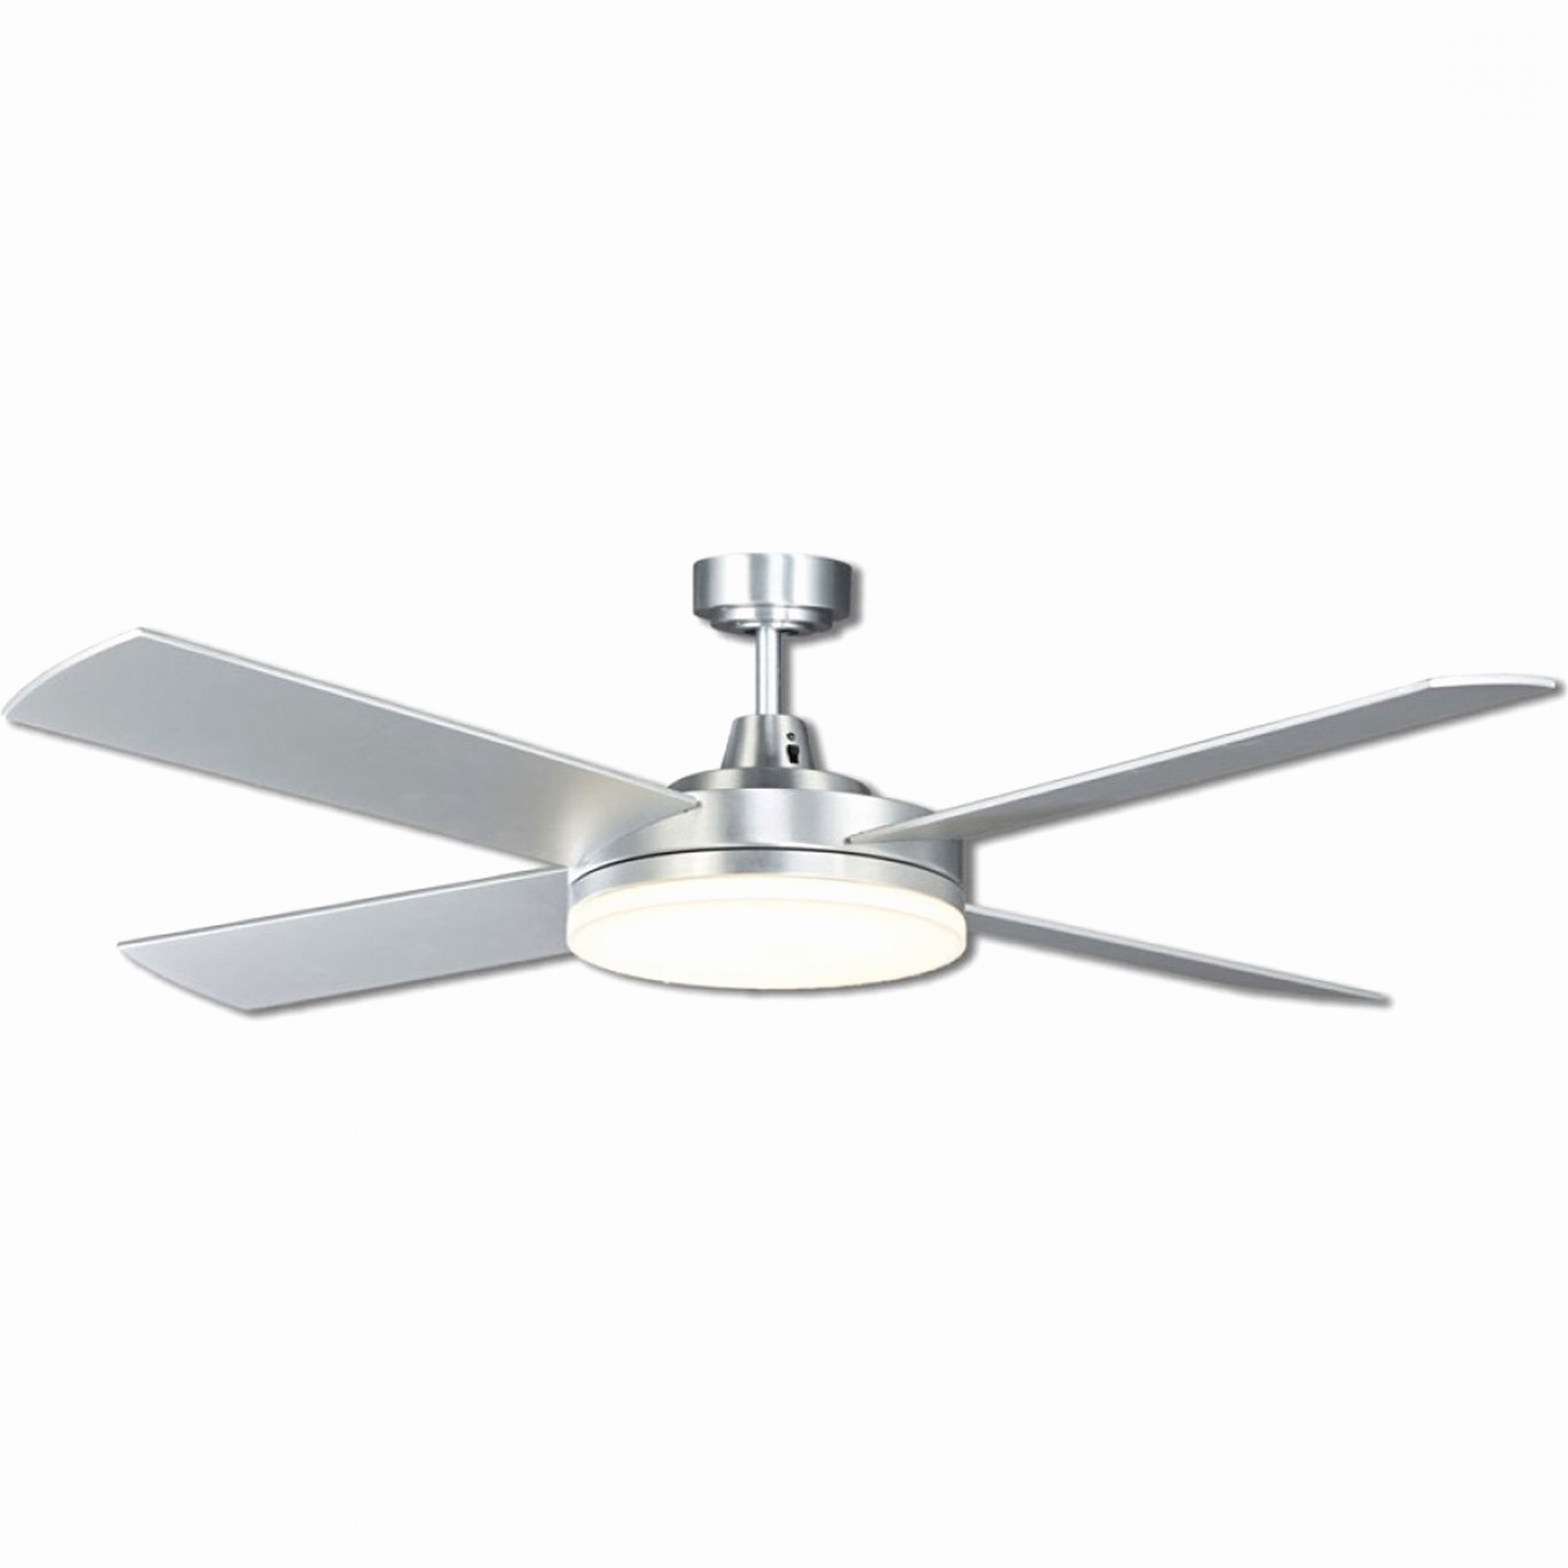 Well Liked Wet Rated Outdoor Ceiling Fans With Light With Tips: Outdoor Ceiling Fans With Lights Wet Rated Contemporary (View 18 of 20)